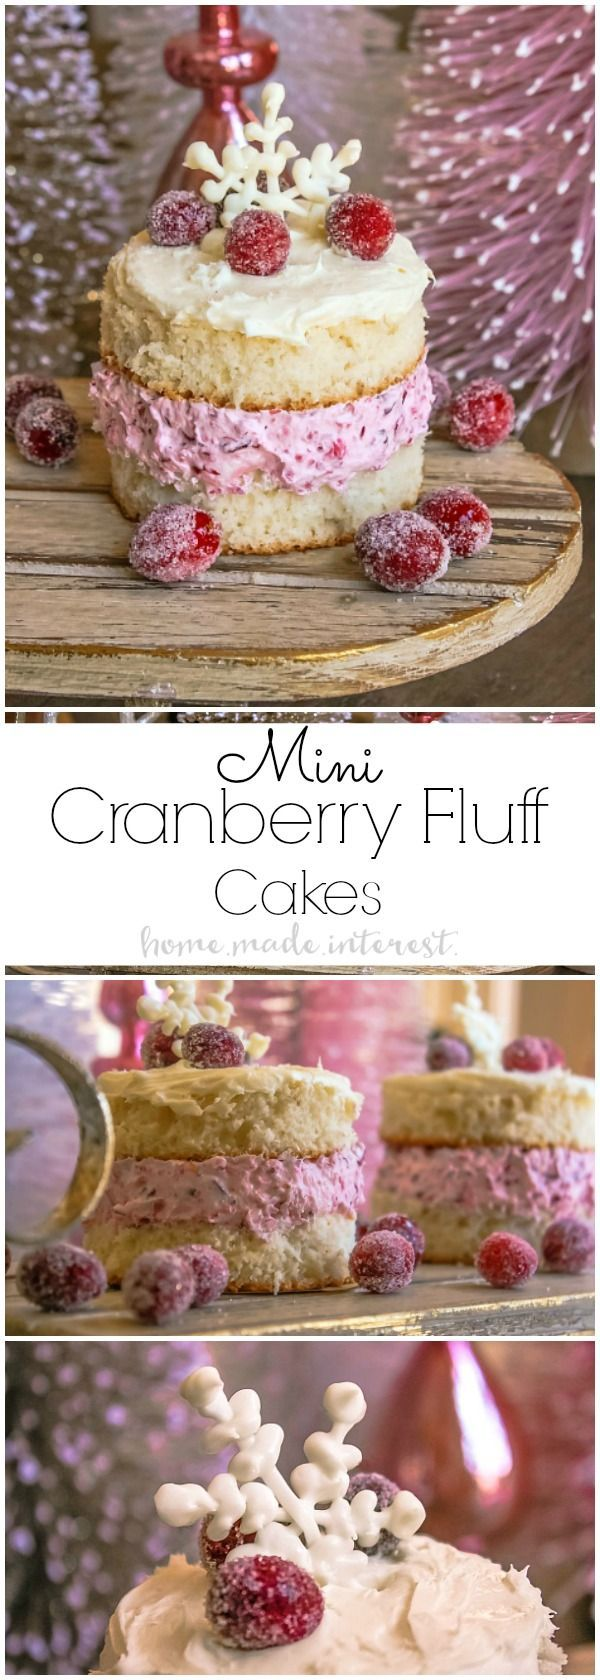 These pretty Mini Cranberry Fluff Cakes are perfect for Thanksgiving dessert or Christmas dessert. The cranberry fluff recipe is one of my favorites and it is even better sandwiched between two slices of cake and topped with white frosting! MyChinet | AD @mychinet